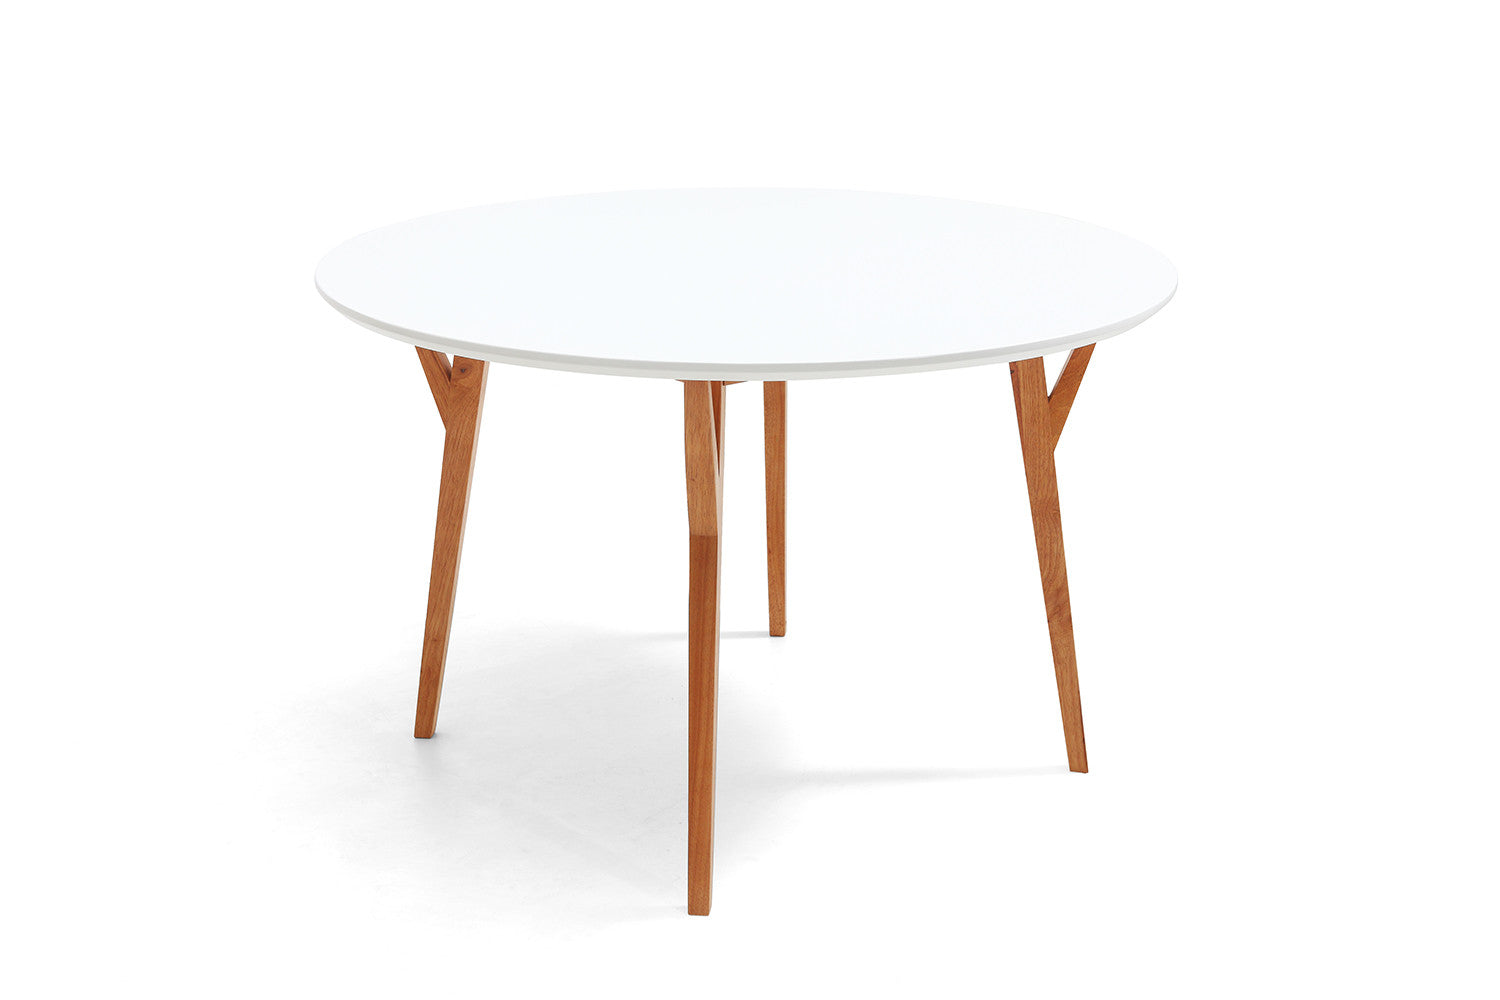 Table de salle manger ronde design scandinave moesa for Table de salle a manger design en bois